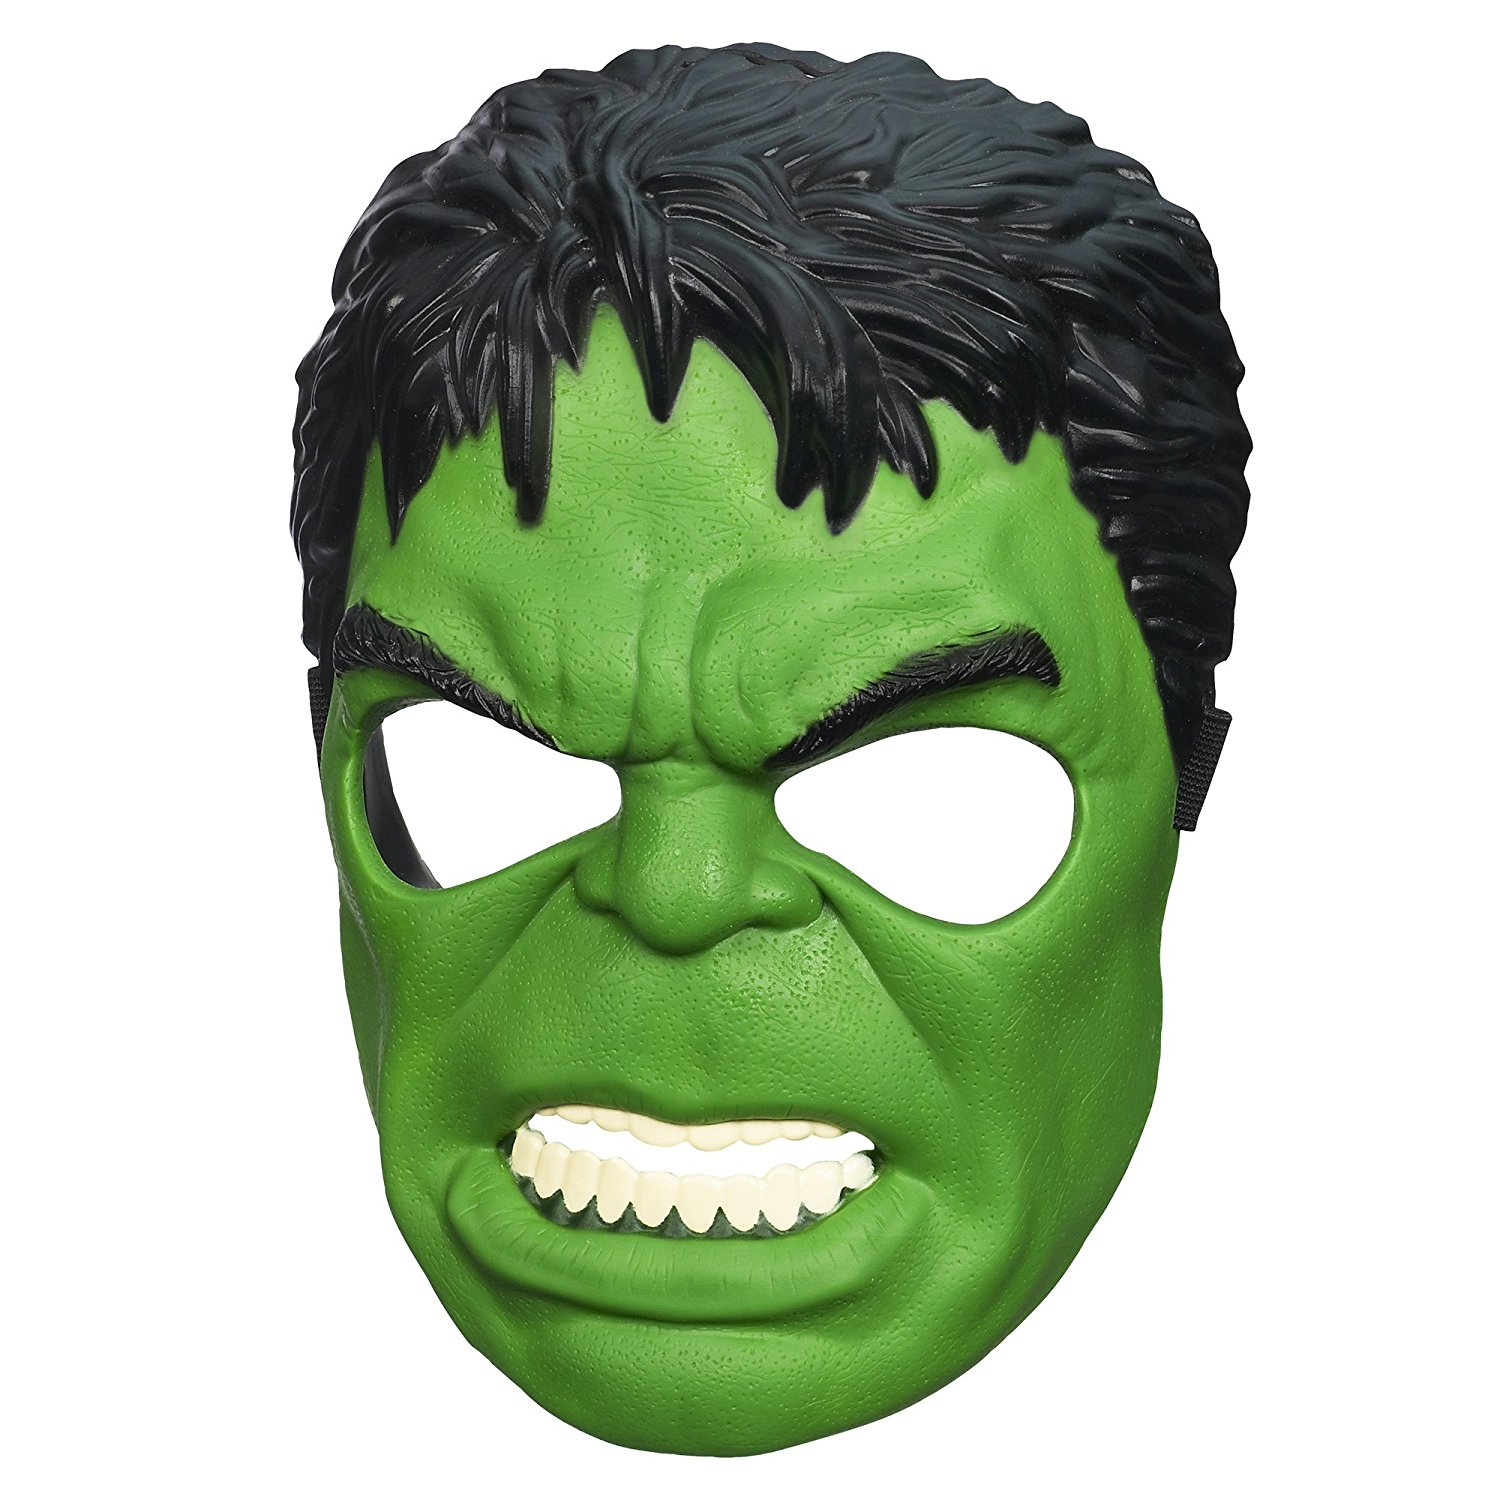 incredible hulk costume for kids and adults guide